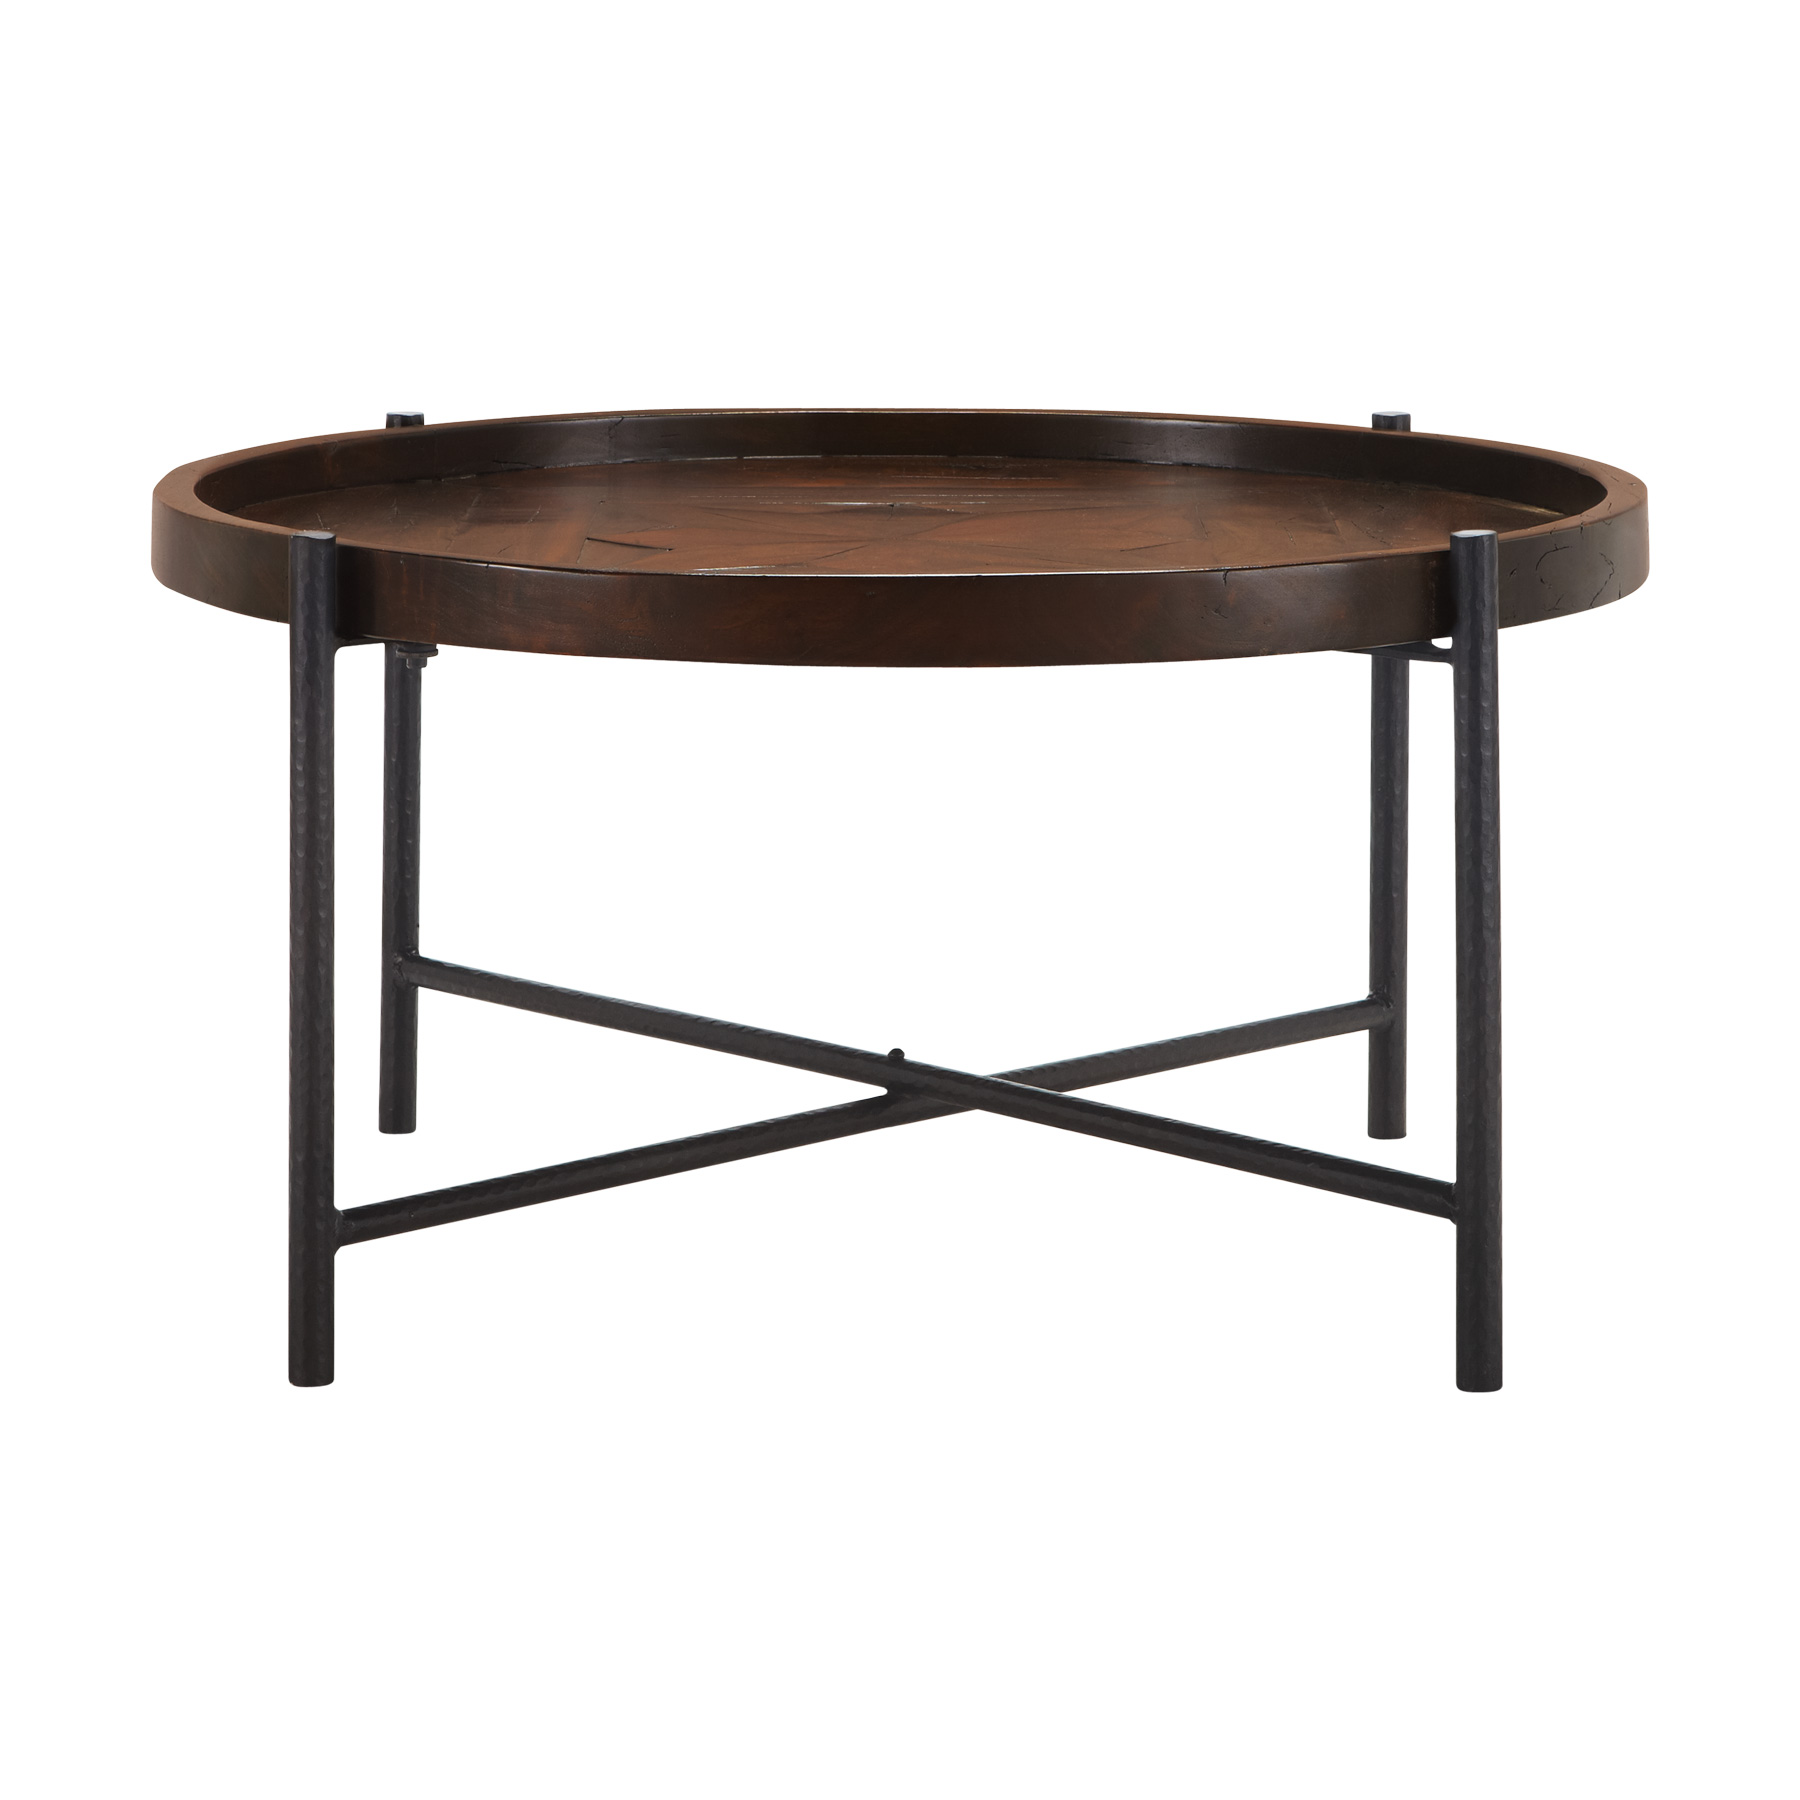 Simple Palencia 34 Inch Round Coffee Table With Iron Base Design 40 Round Coffee Table Unique Trunk Coffee Table (View 10 of 10)